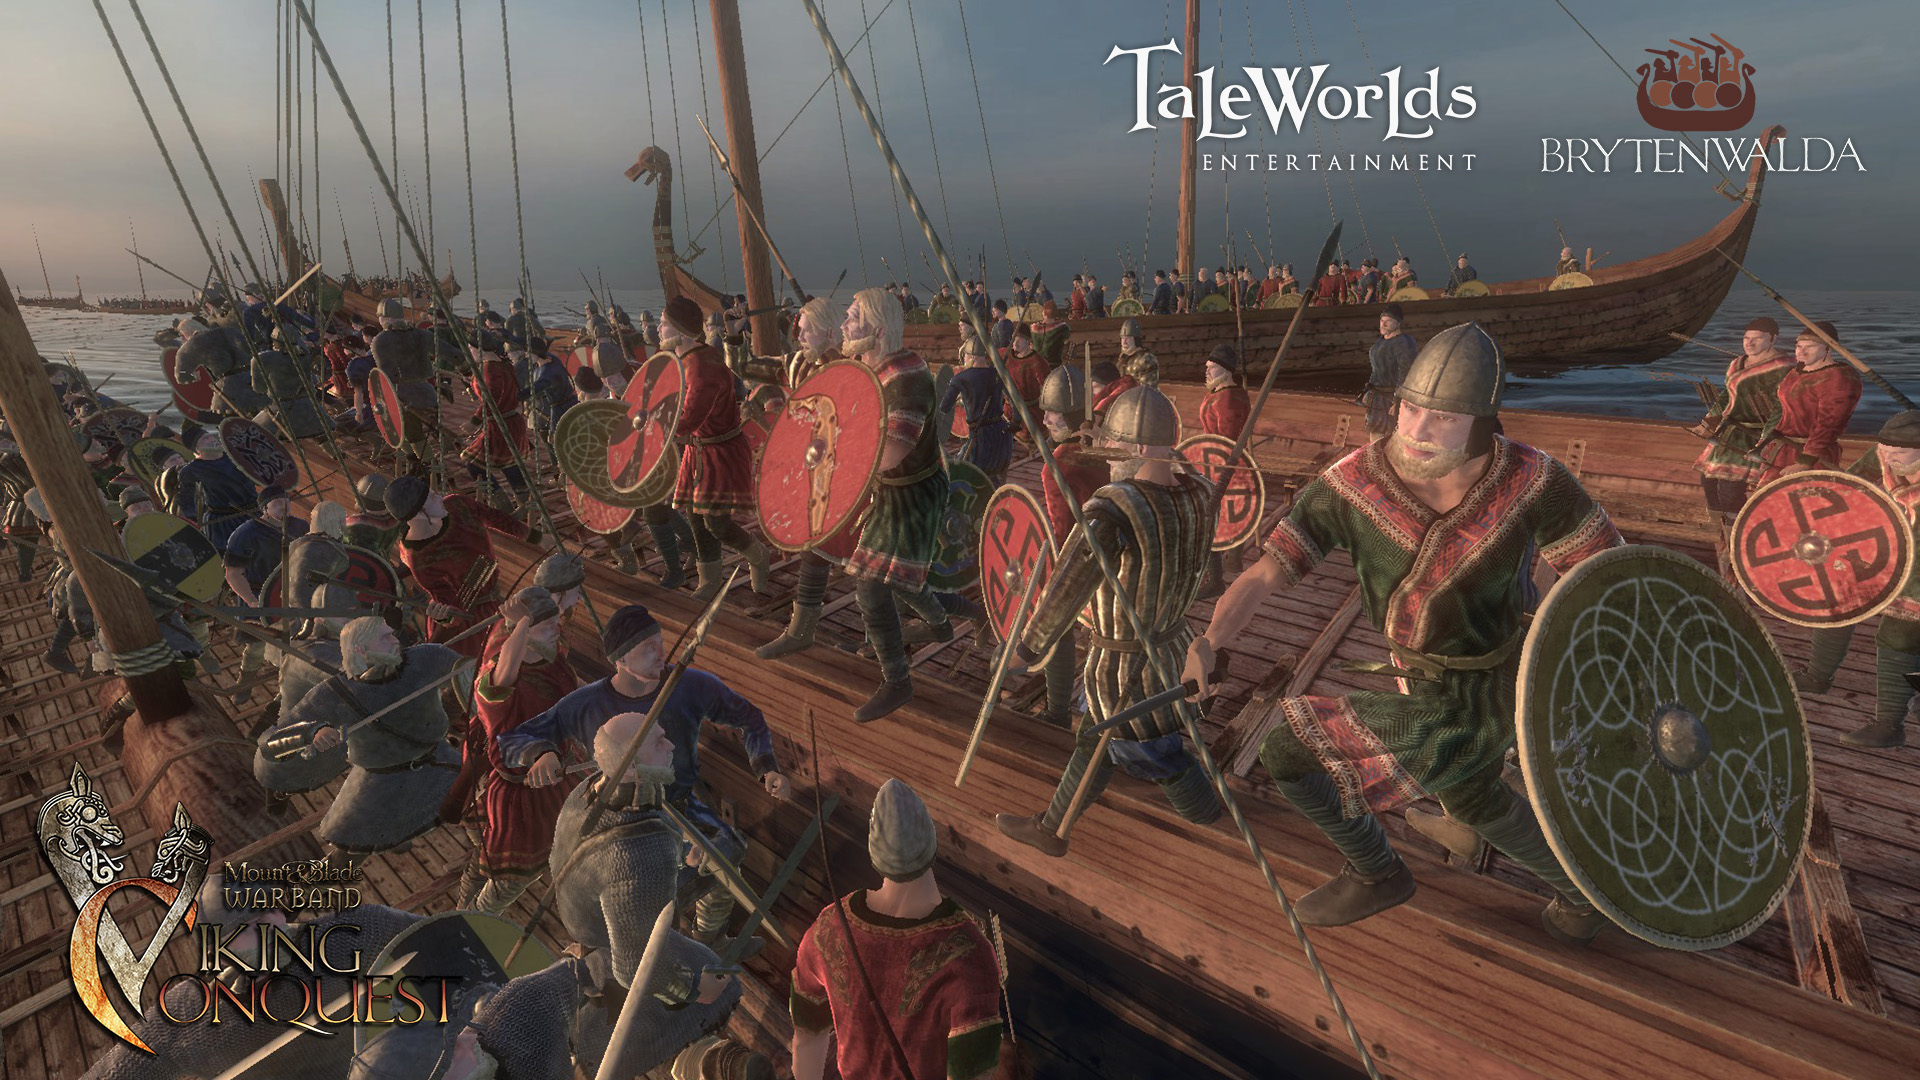 ss 5ace4927345ddfb2efae3ea971d36db13a164f16.1920x1080 - Mount & Blade: Viking Conquest Review - Time to Pillage